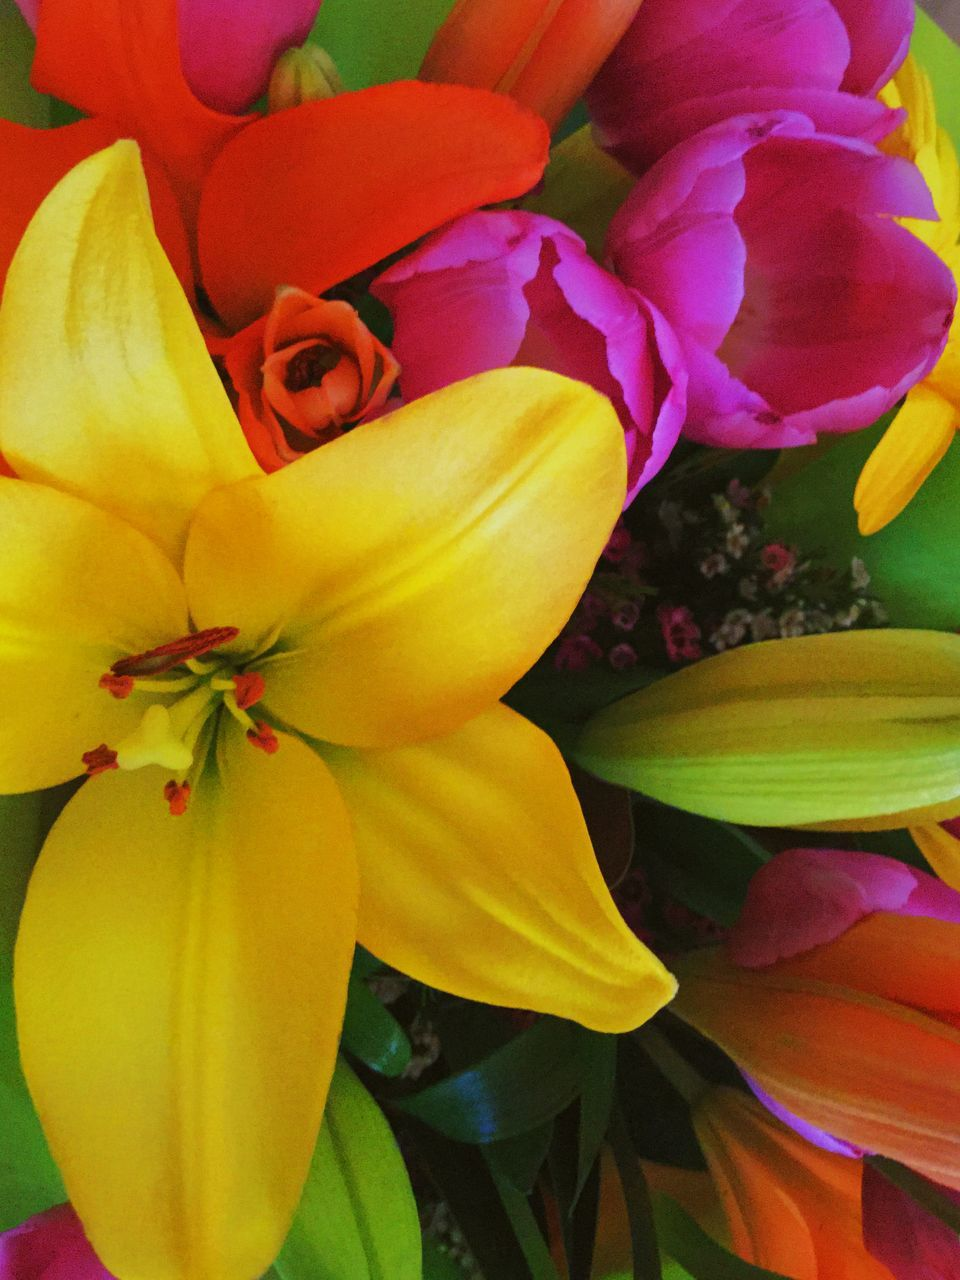 flower, petal, fragility, freshness, beauty in nature, flower head, nature, growth, no people, yellow, close-up, blooming, full frame, plant, day, backgrounds, leaf, outdoors, multi colored